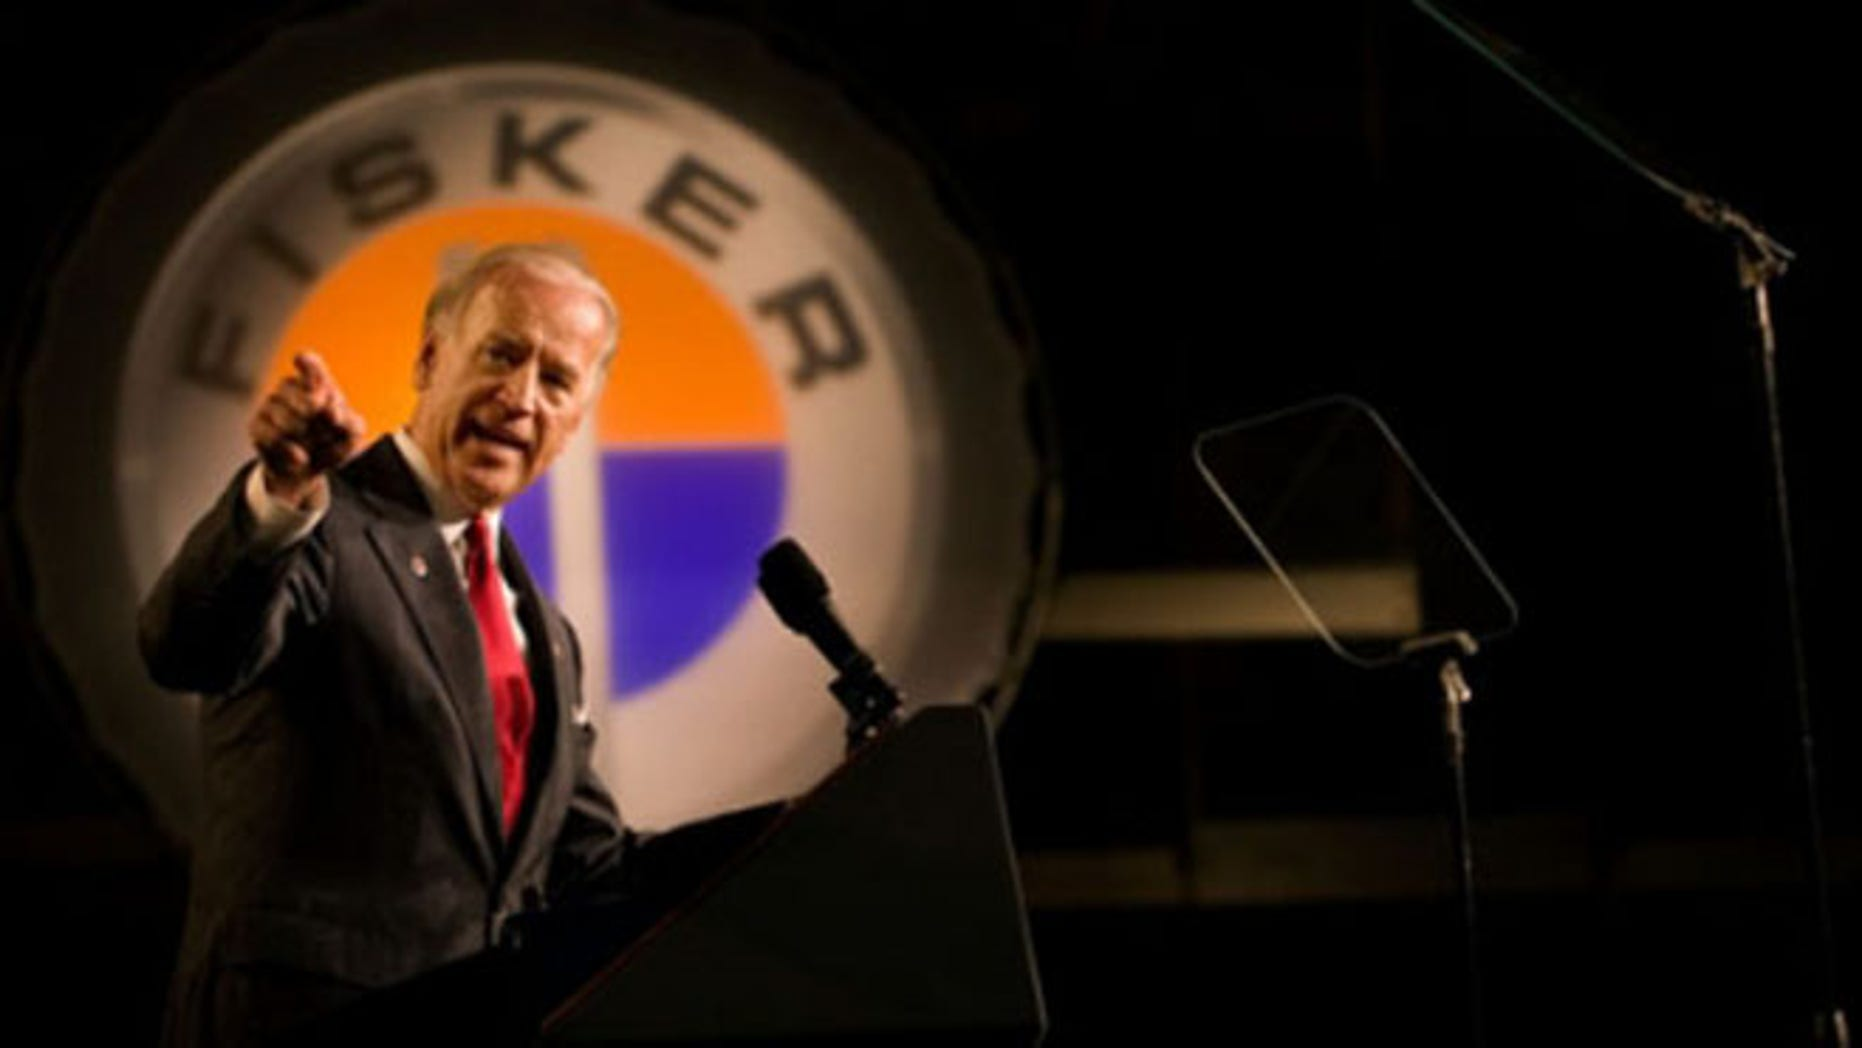 Oct. 27, 2009: Vice President Biden announces that Fisker will build plug-in electric cars at the shuttered GM plant in Wilmington, Del. The project was later put on hold amid financial troubles.